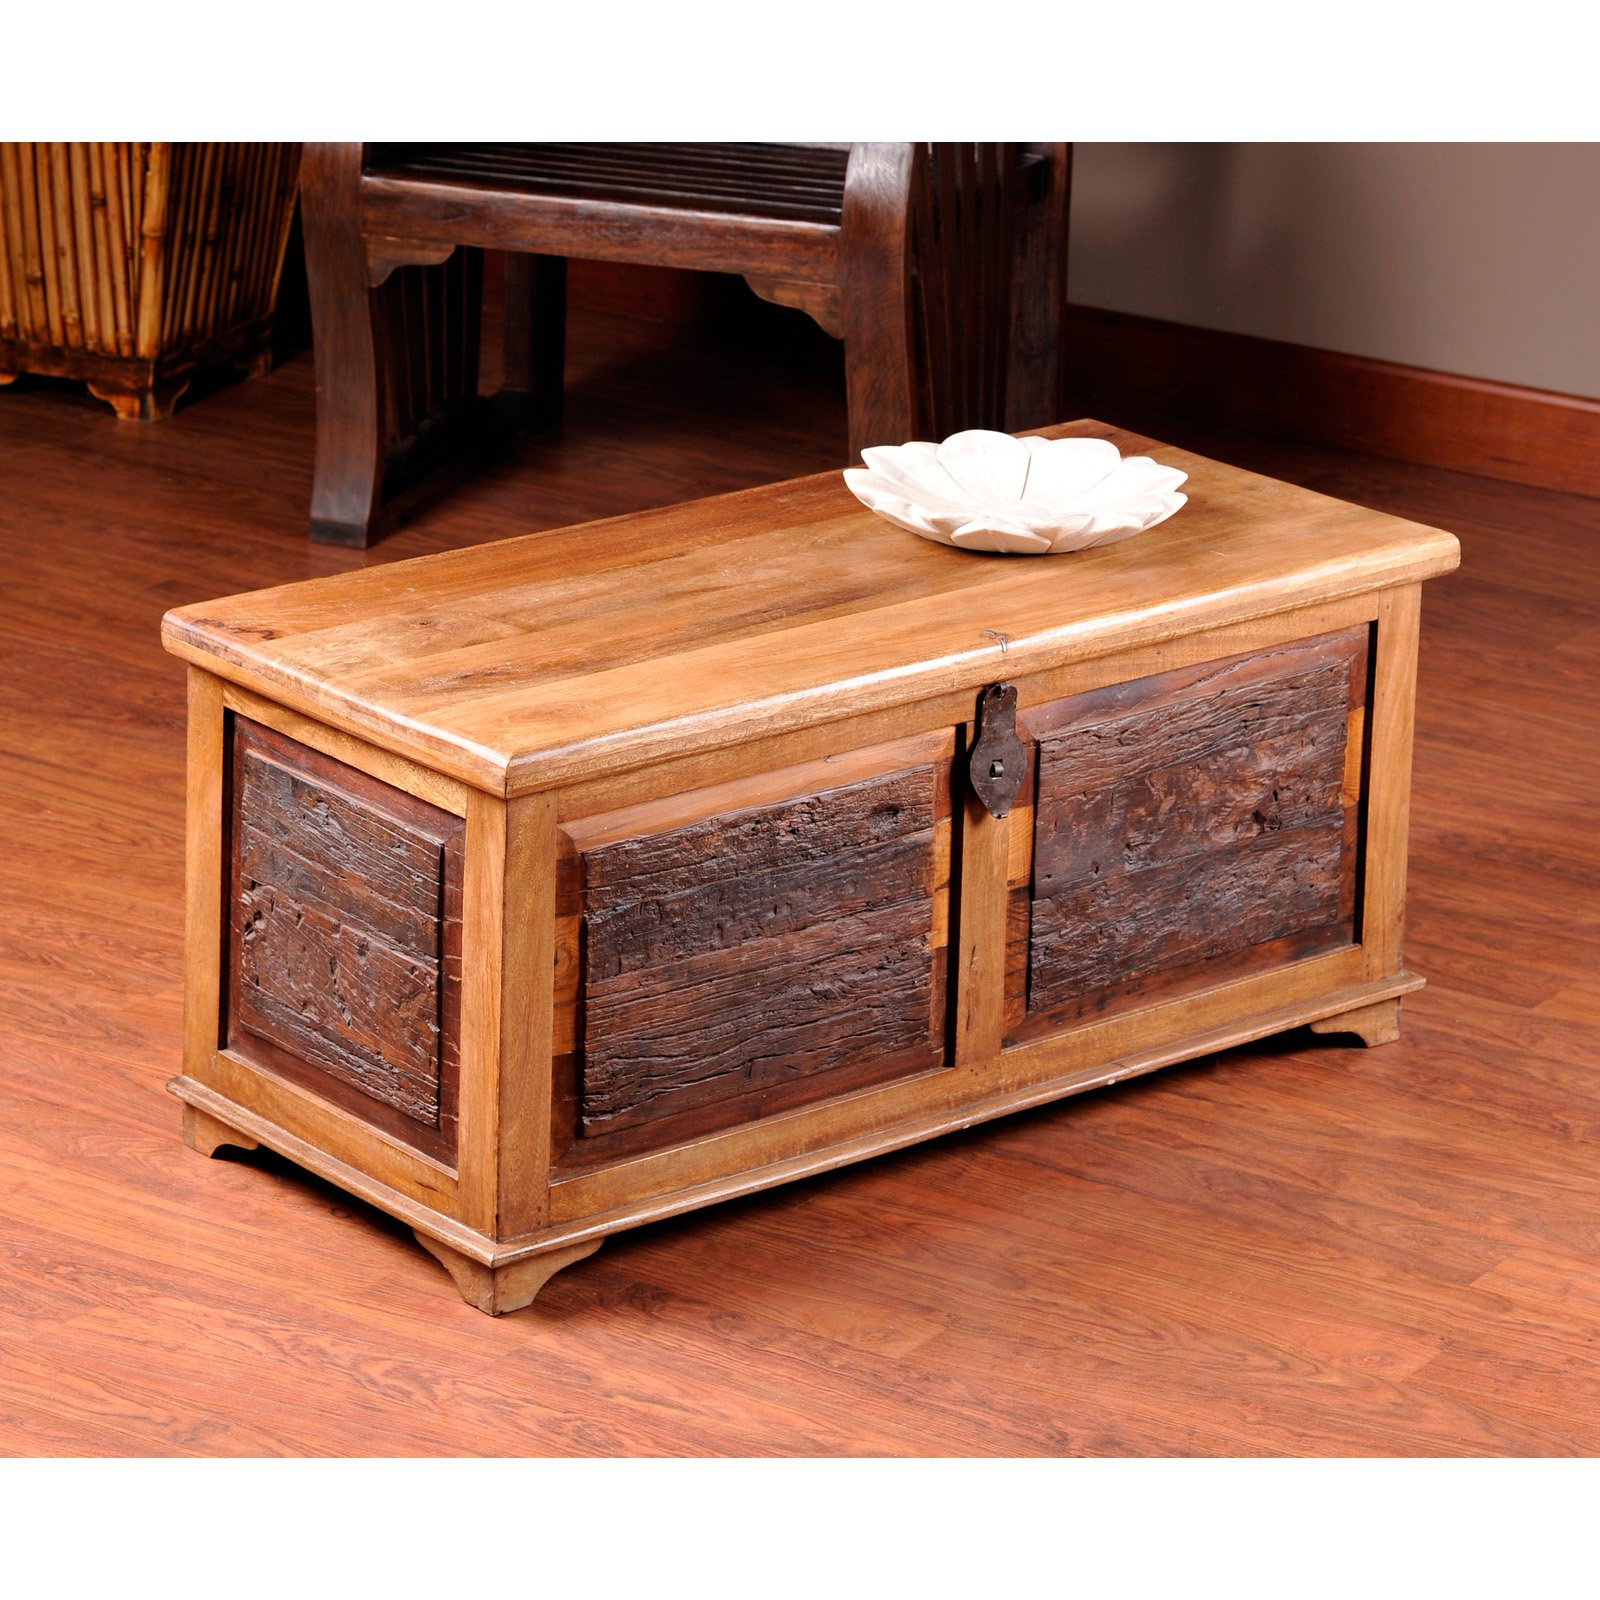 William Sheppee Kerala Blanket Chest by William Sheppee